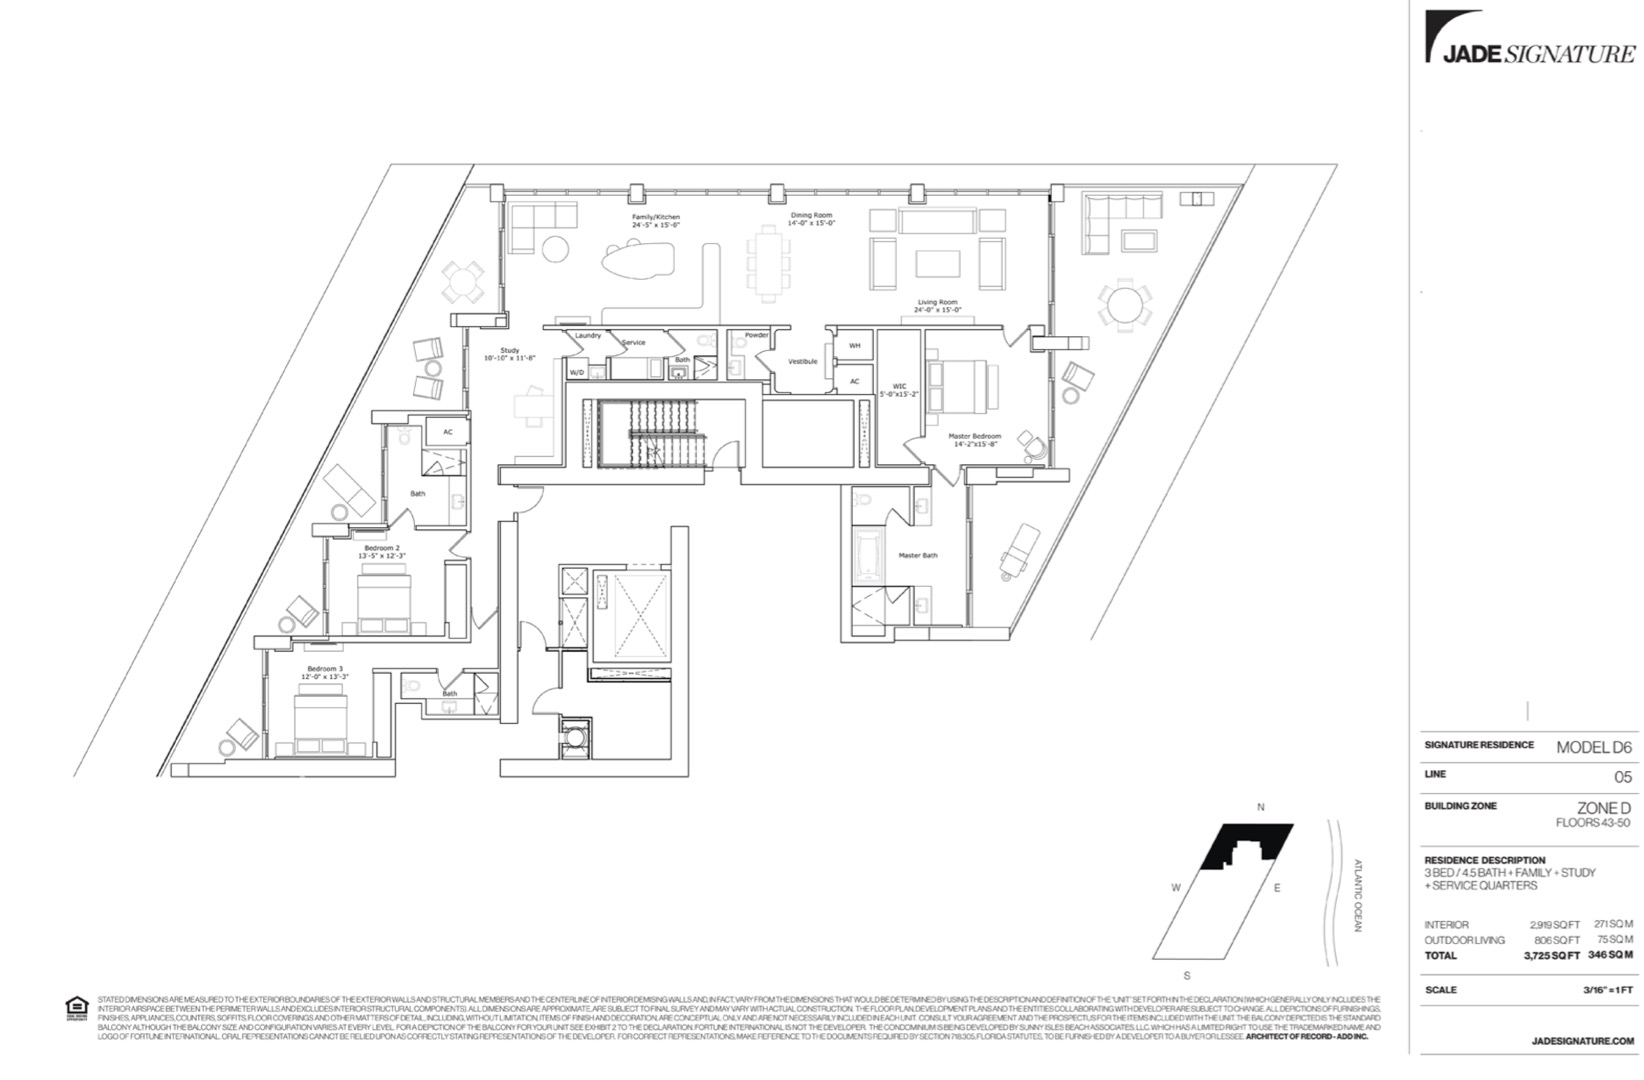 Floor plan image D6 - 3/4.5/FamilyRoom/Study/ServiceQuarters  - 2919 sqft image